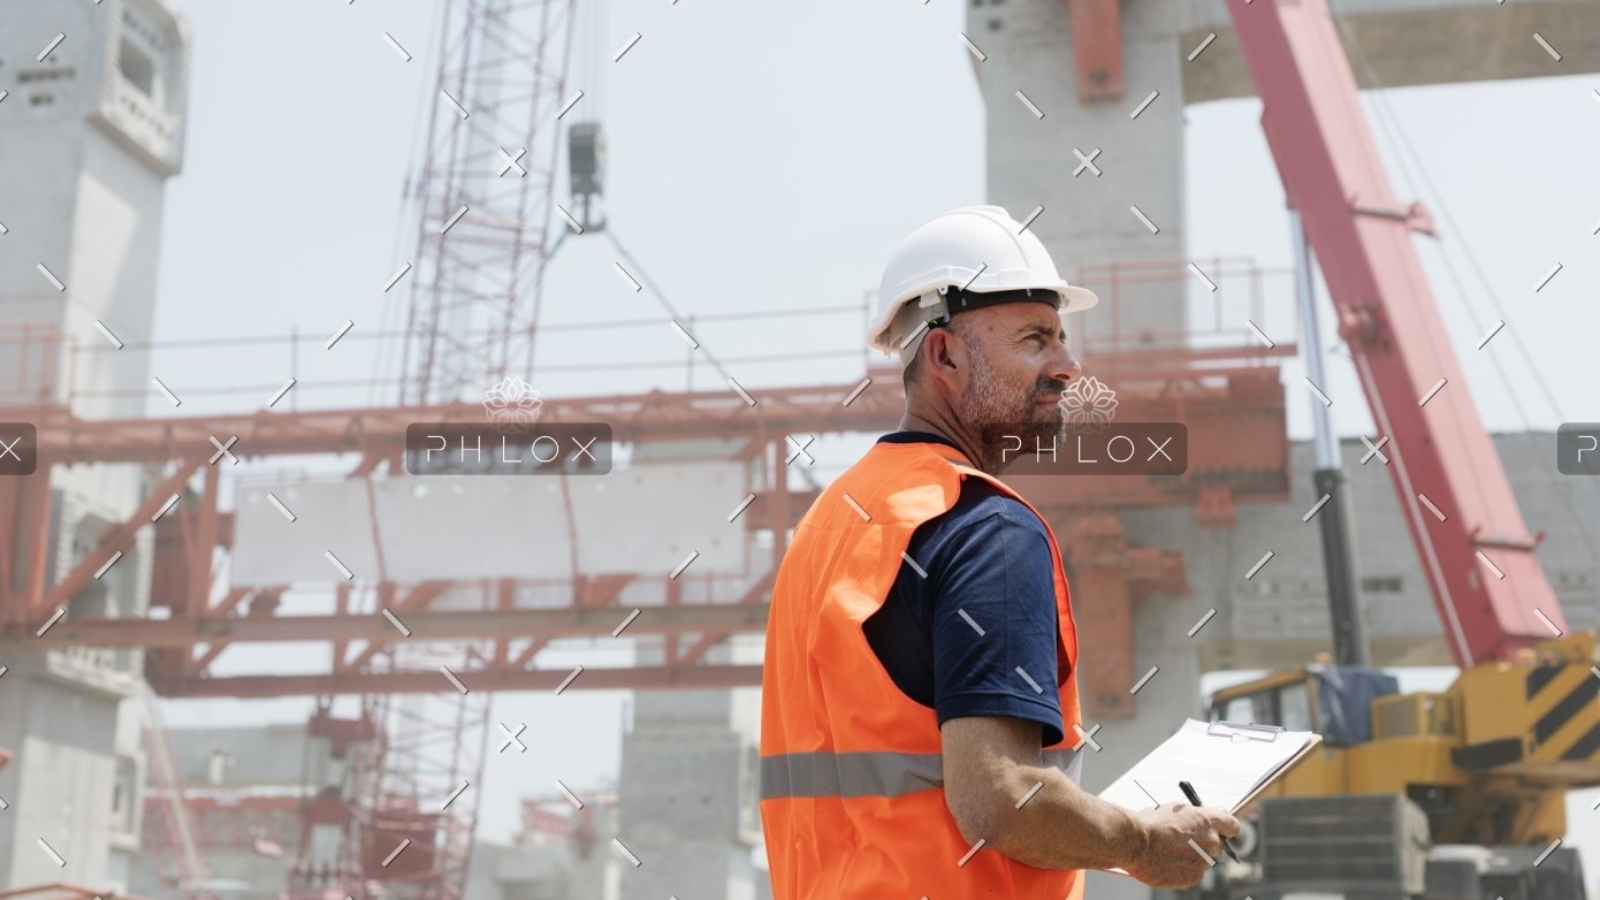 demo-attachment-1562-architecture-construction-safety-first-career-PGV9U8Y